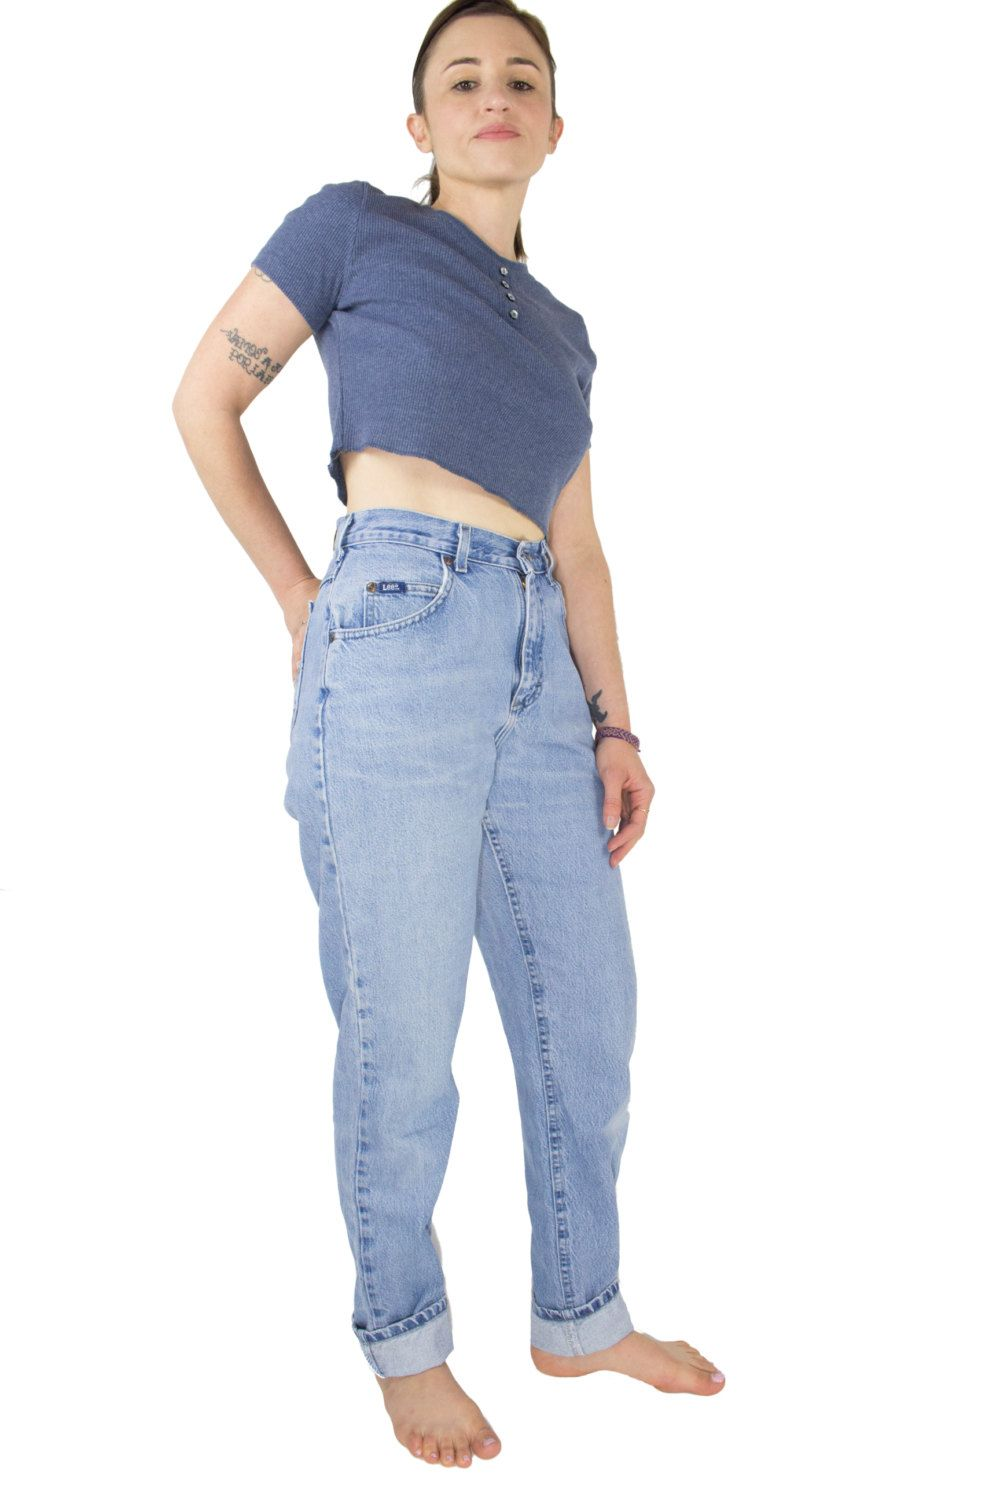 Vintage 90s High Waisted Lee Jeans | Light Wash Denim Mom Jeans | Size 27 | Retro Grunge Cowgirl Hi Waist Jeans by MainAndGrand on Etsy